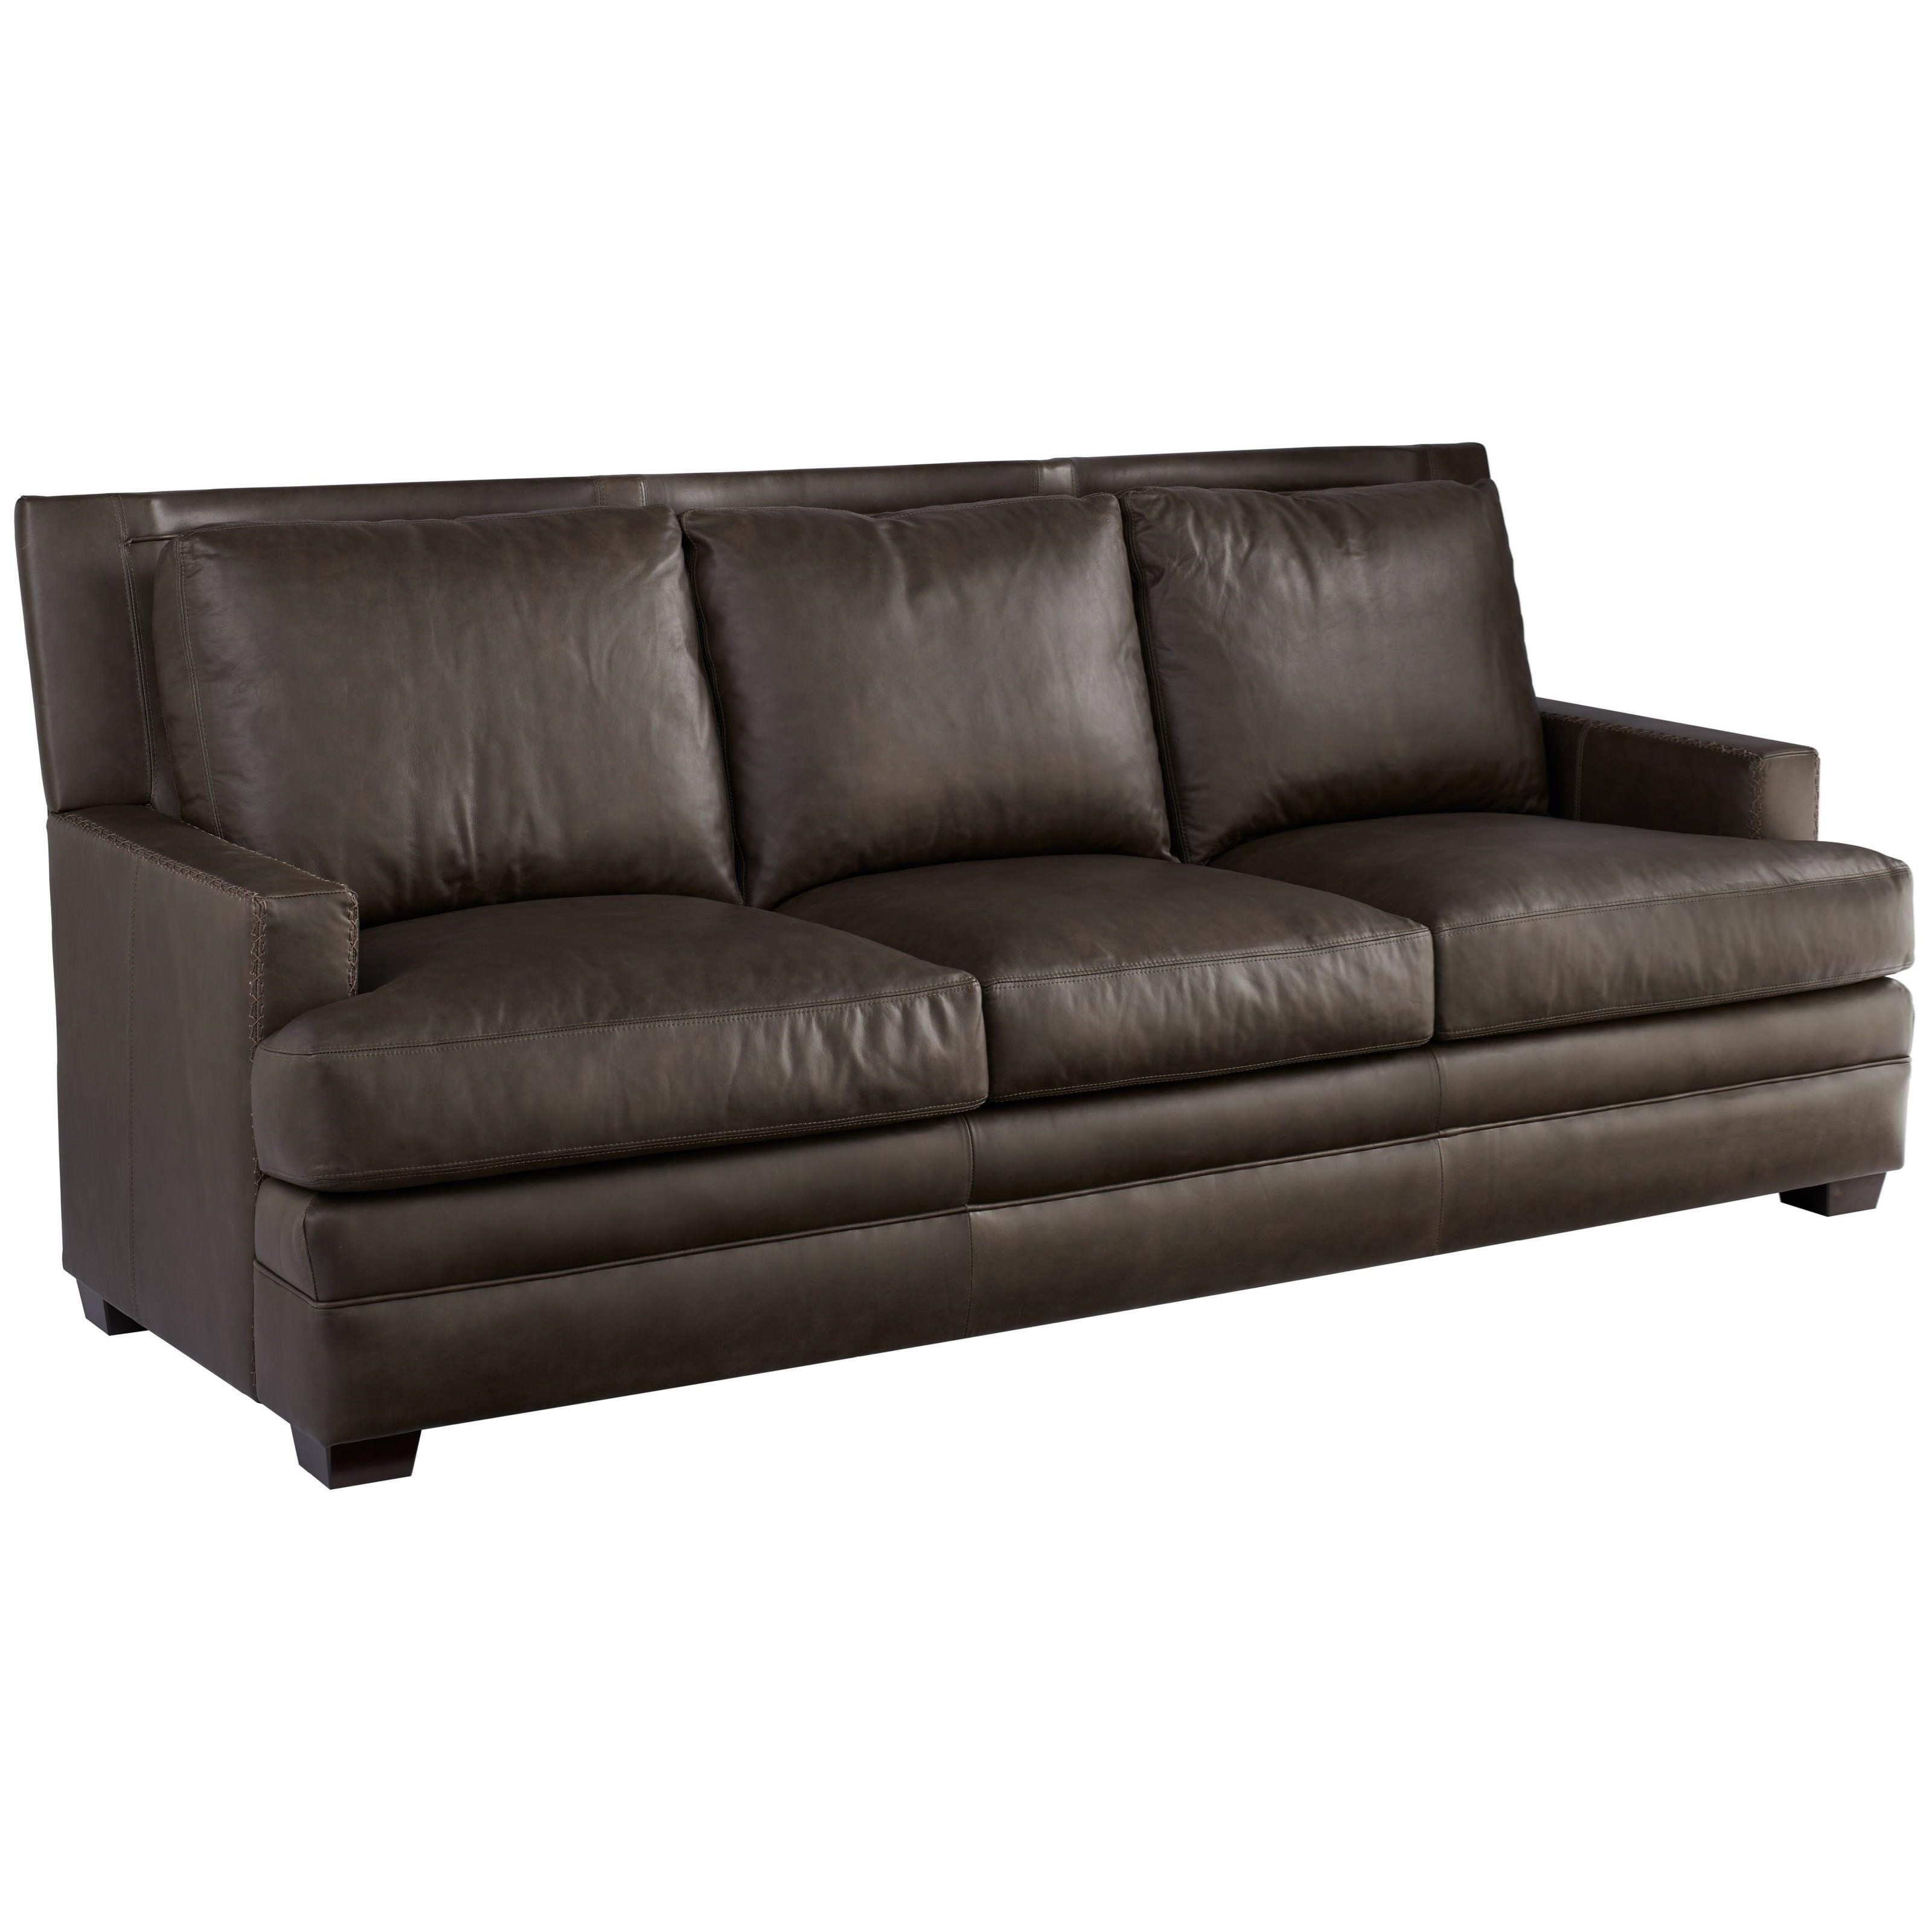 Leather Kipling Sofa by Universal at Baer's Furniture